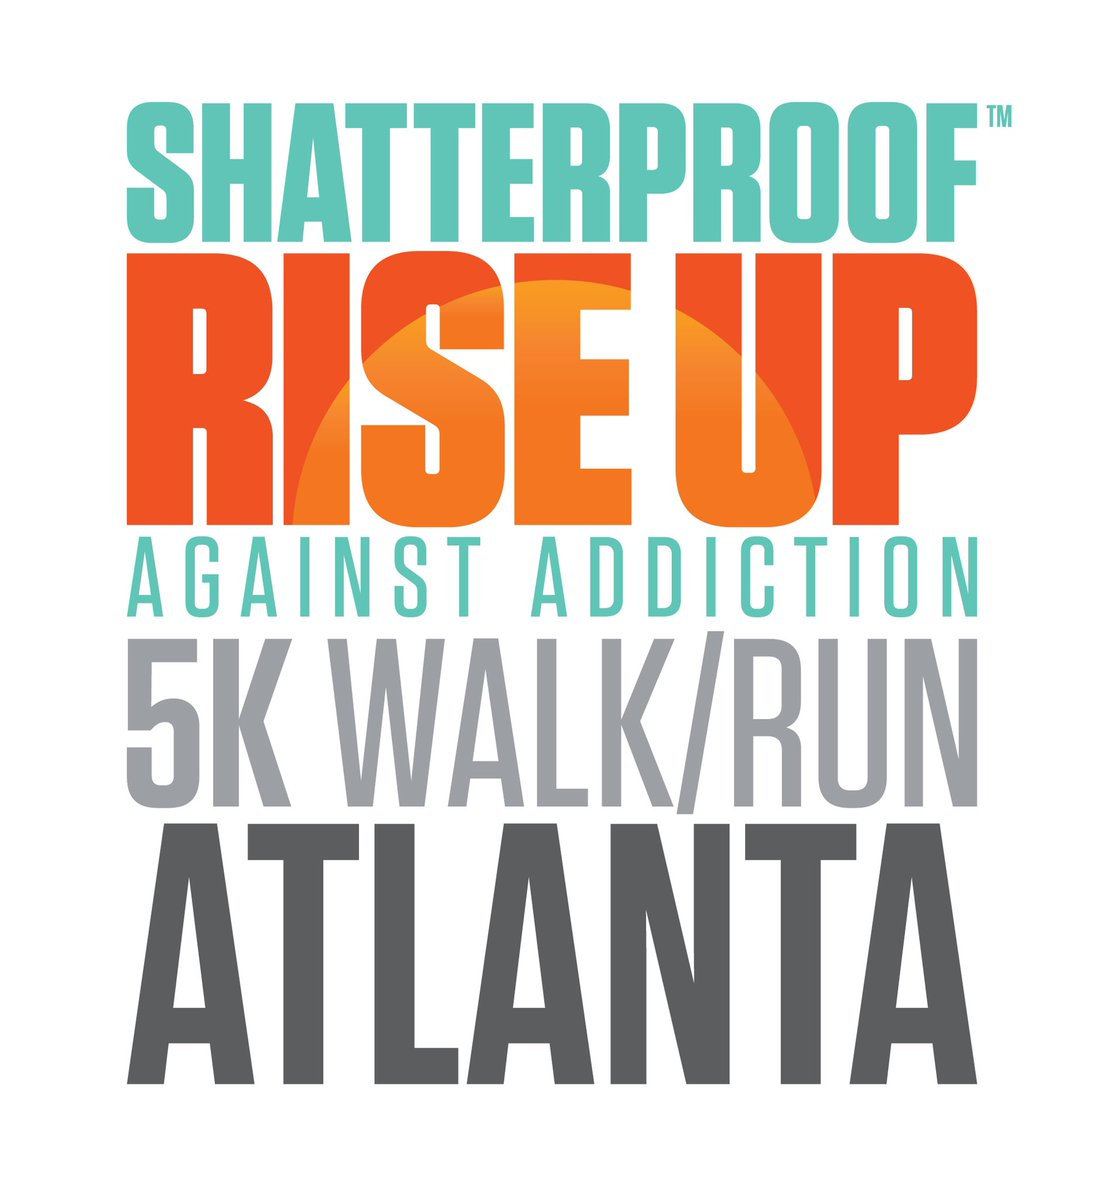 Rise Up Against Addiction Nov 2 at @piedmontpark. Honor a loved one, support a friend, and celebrate recovery with Shatterproof: http://www.shatterproof5atlanta.org #shatterproof5kAtlanta